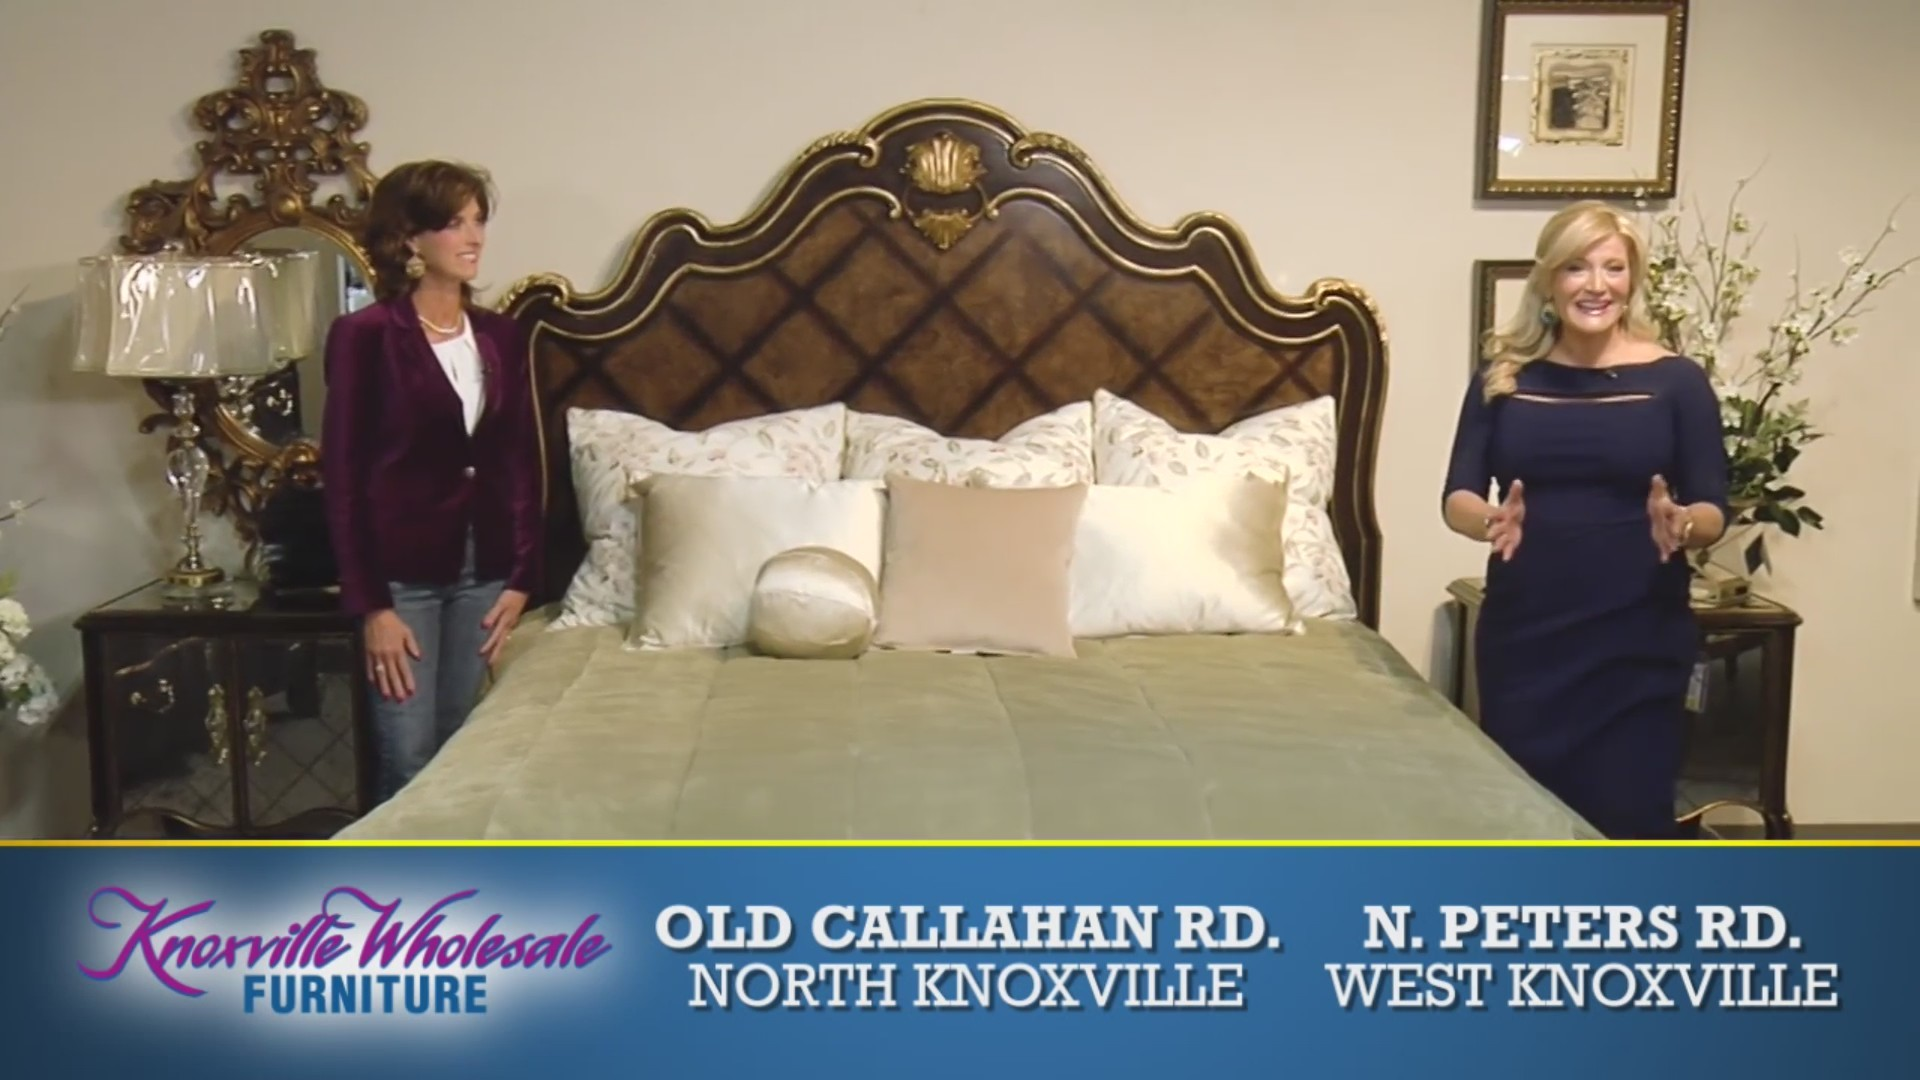 Knoxville Wholesale Furniture – Lovely layers on beds